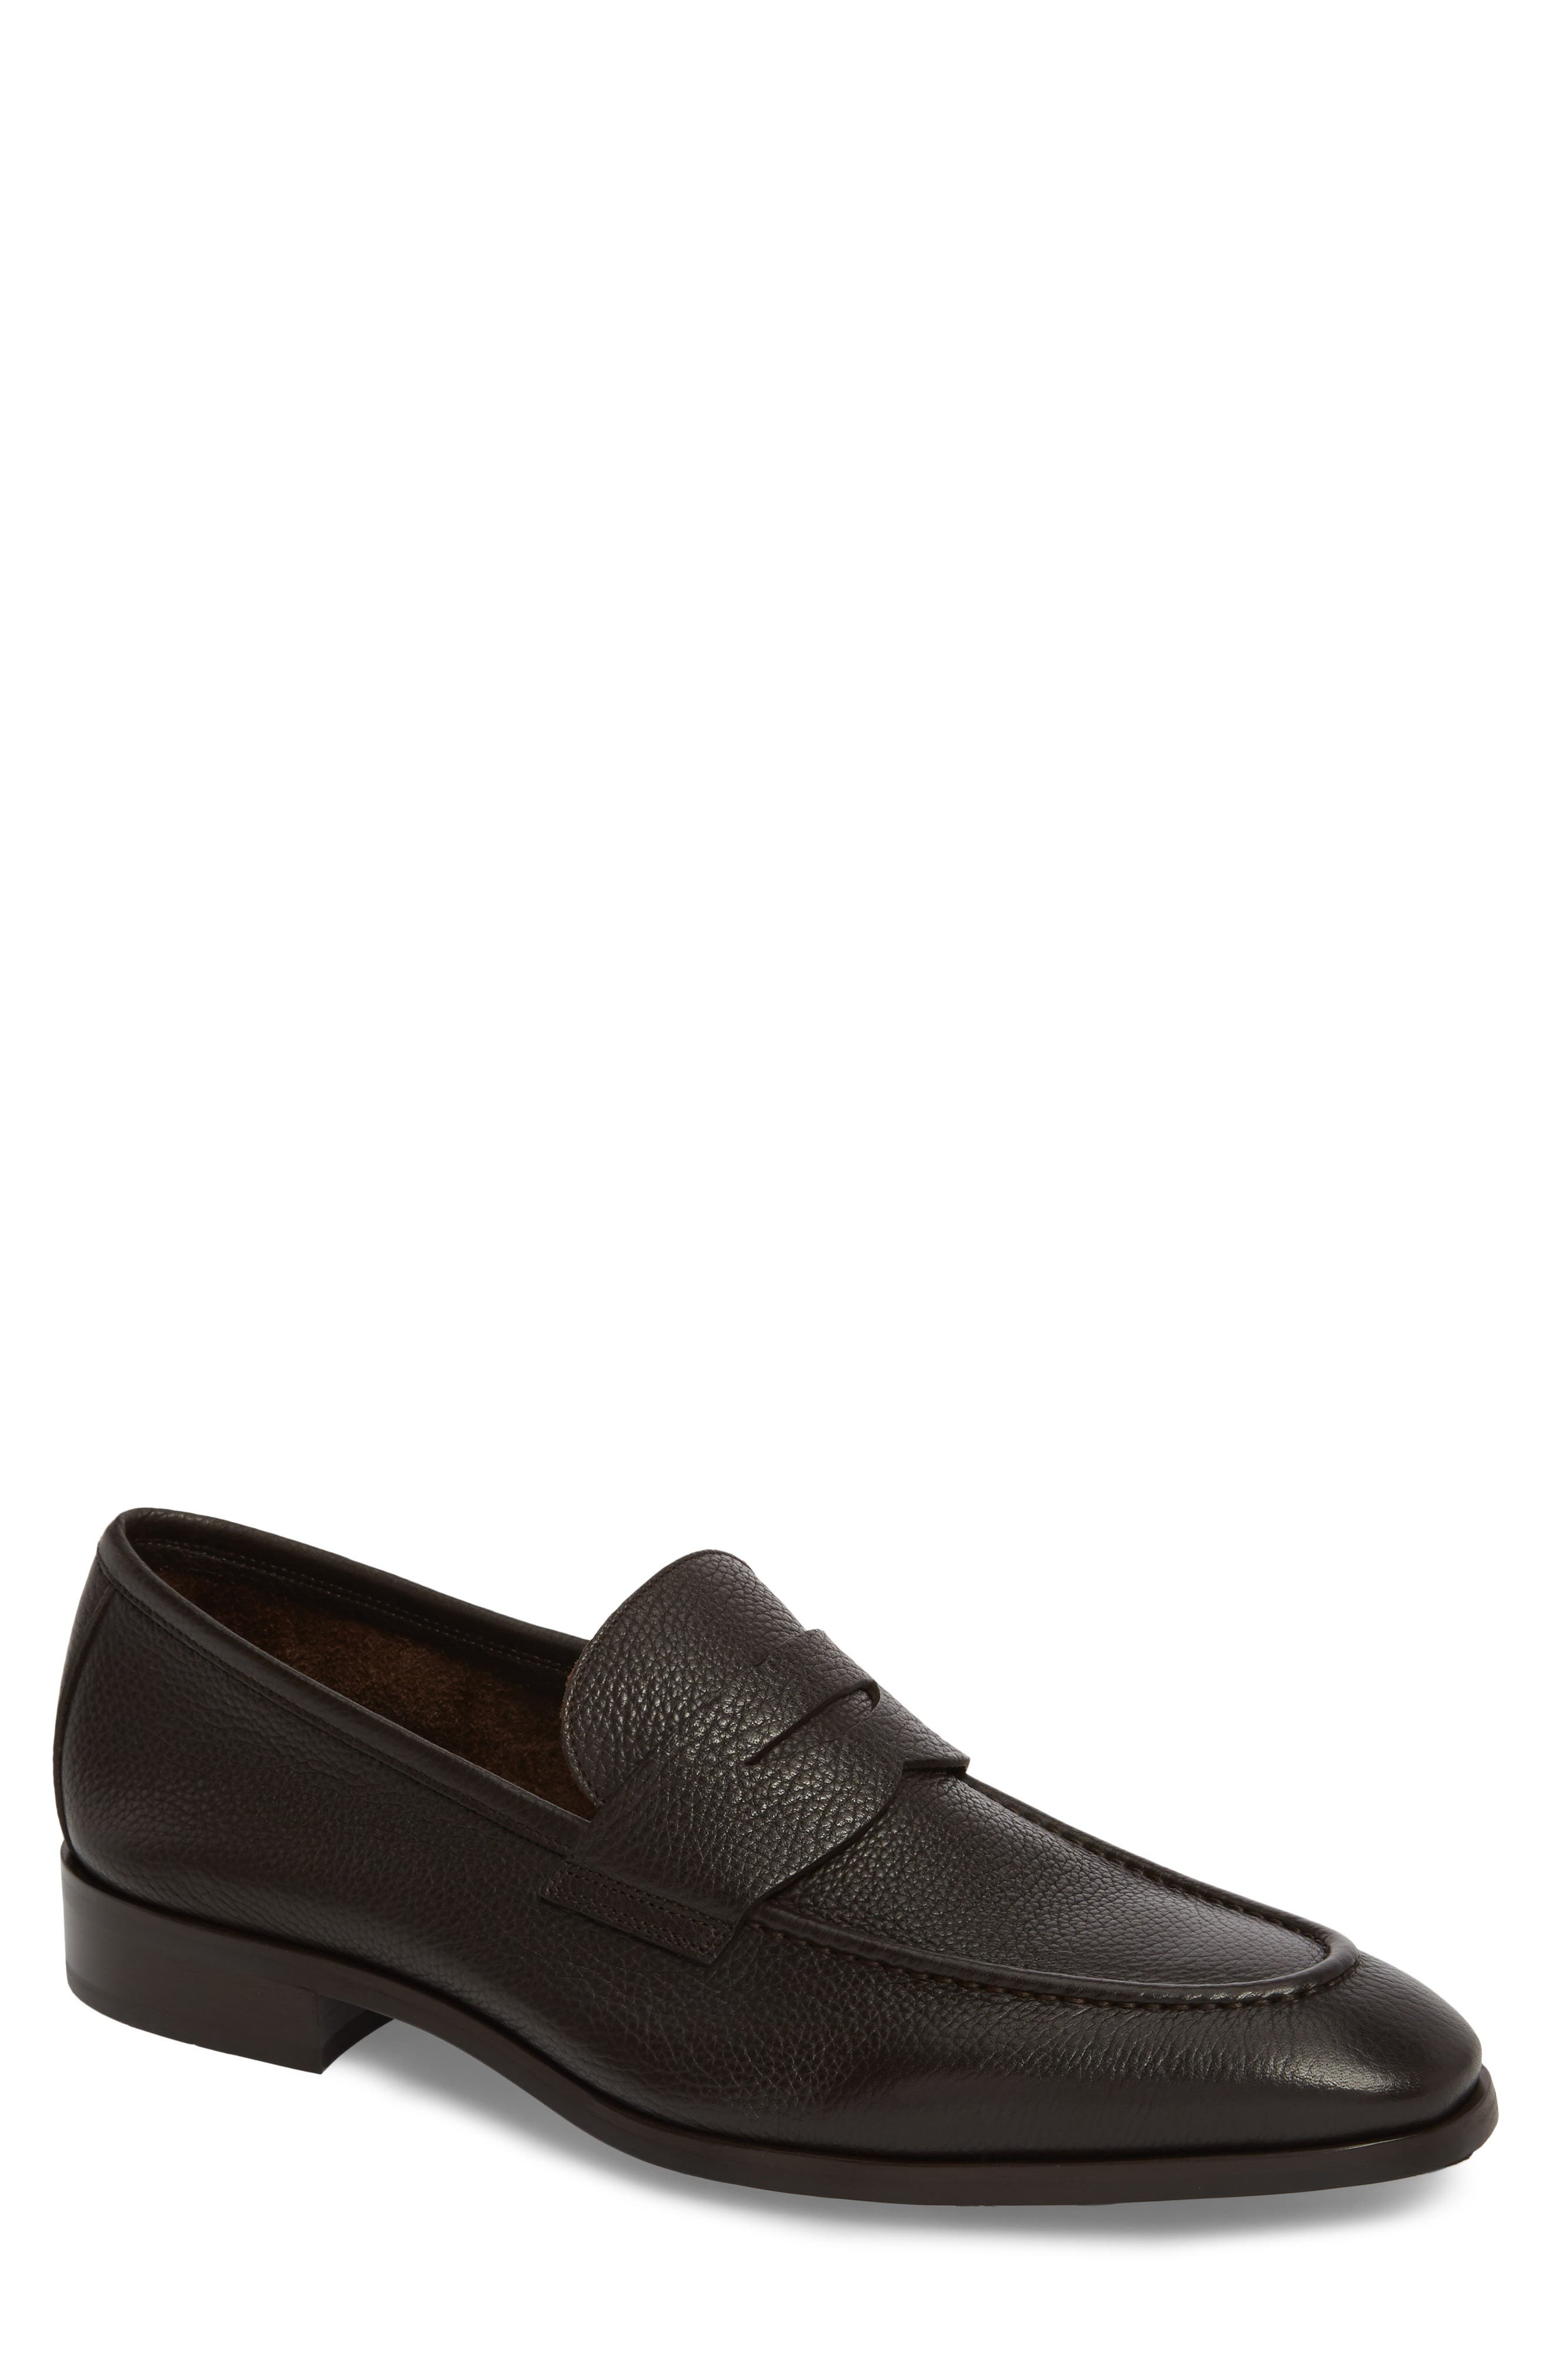 Johnson Penny Loafer,                         Main,                         color, Tmoro Leather